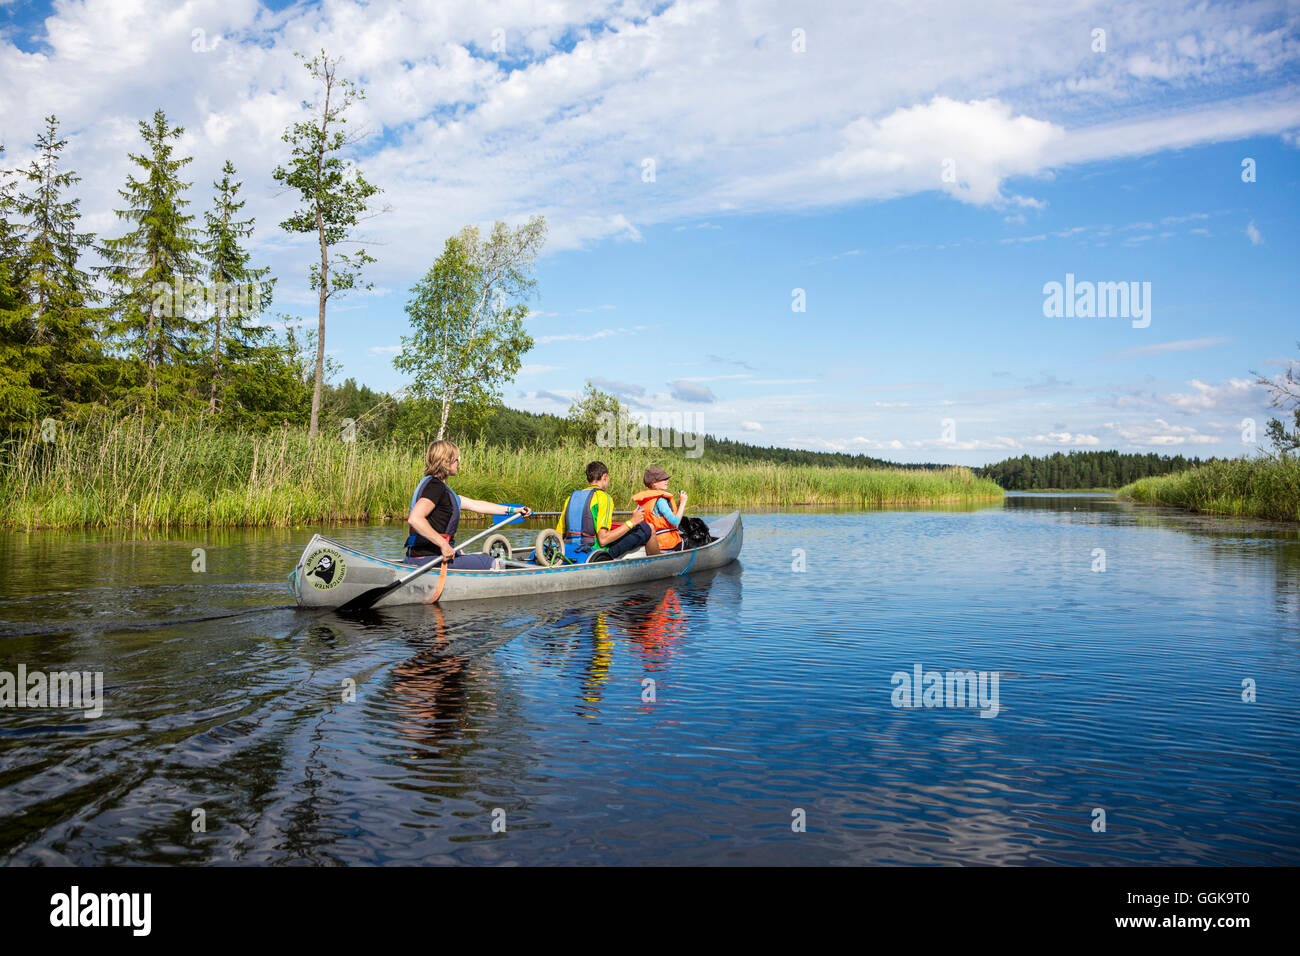 Canoe on lake Vaermeln, Vaermland, Sweden - Stock Image